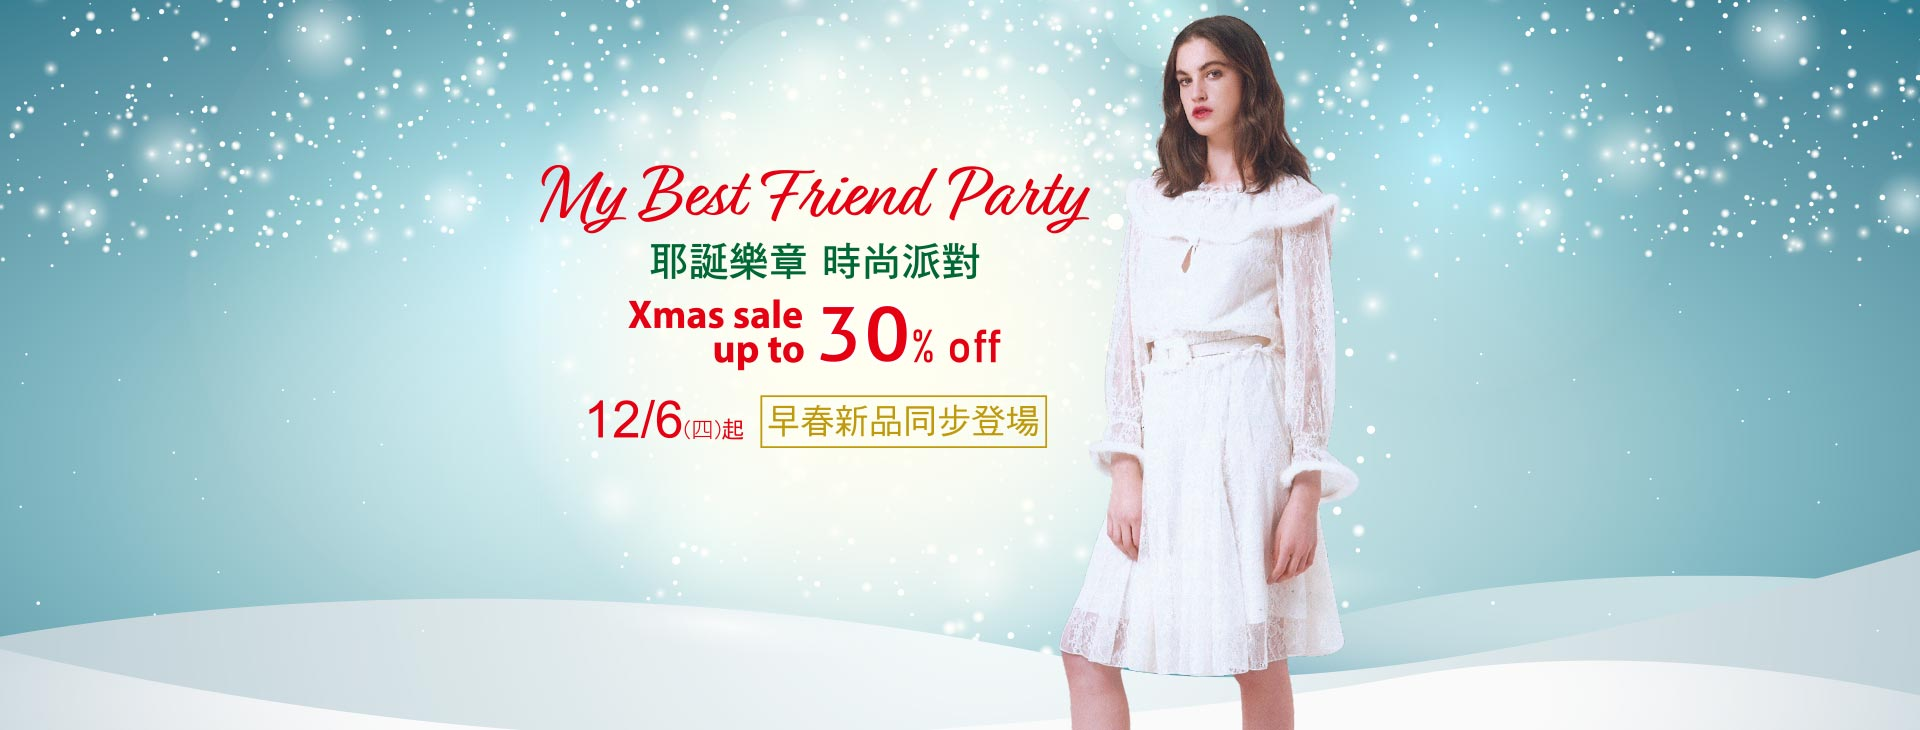 My Best Friend Party 耶誕樂章 時尚派對 Xmas sale up to 30% off